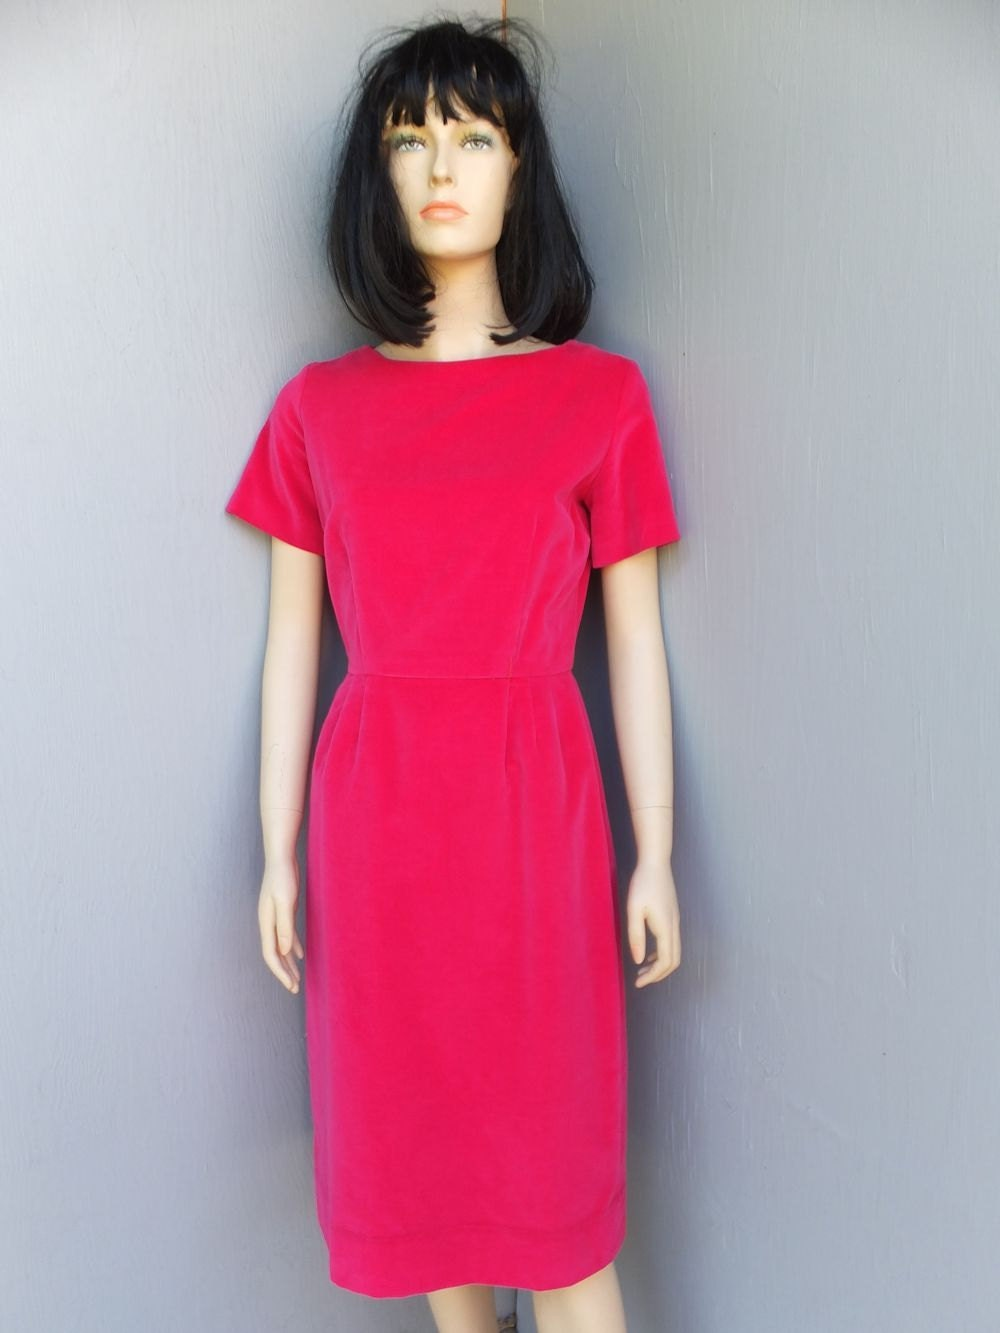 1950s Dress Hourglass Figure Hugging Dress Fuchsia Velour